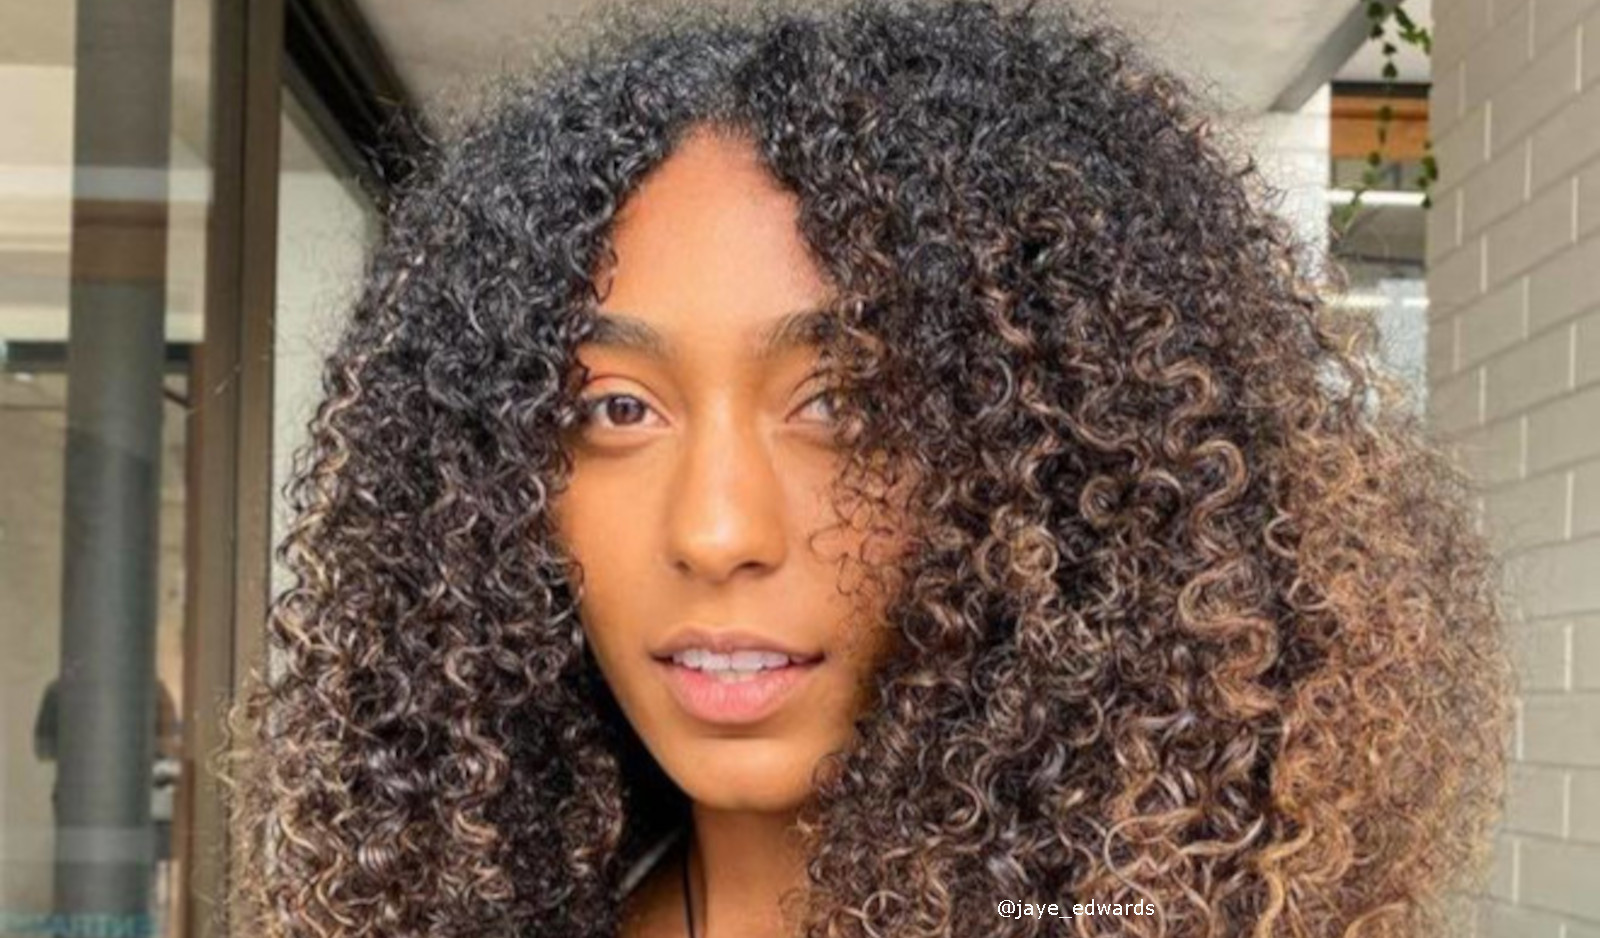 Chocolate Chai Hair Trend Is The New Way To Update Your Balayage This Fall